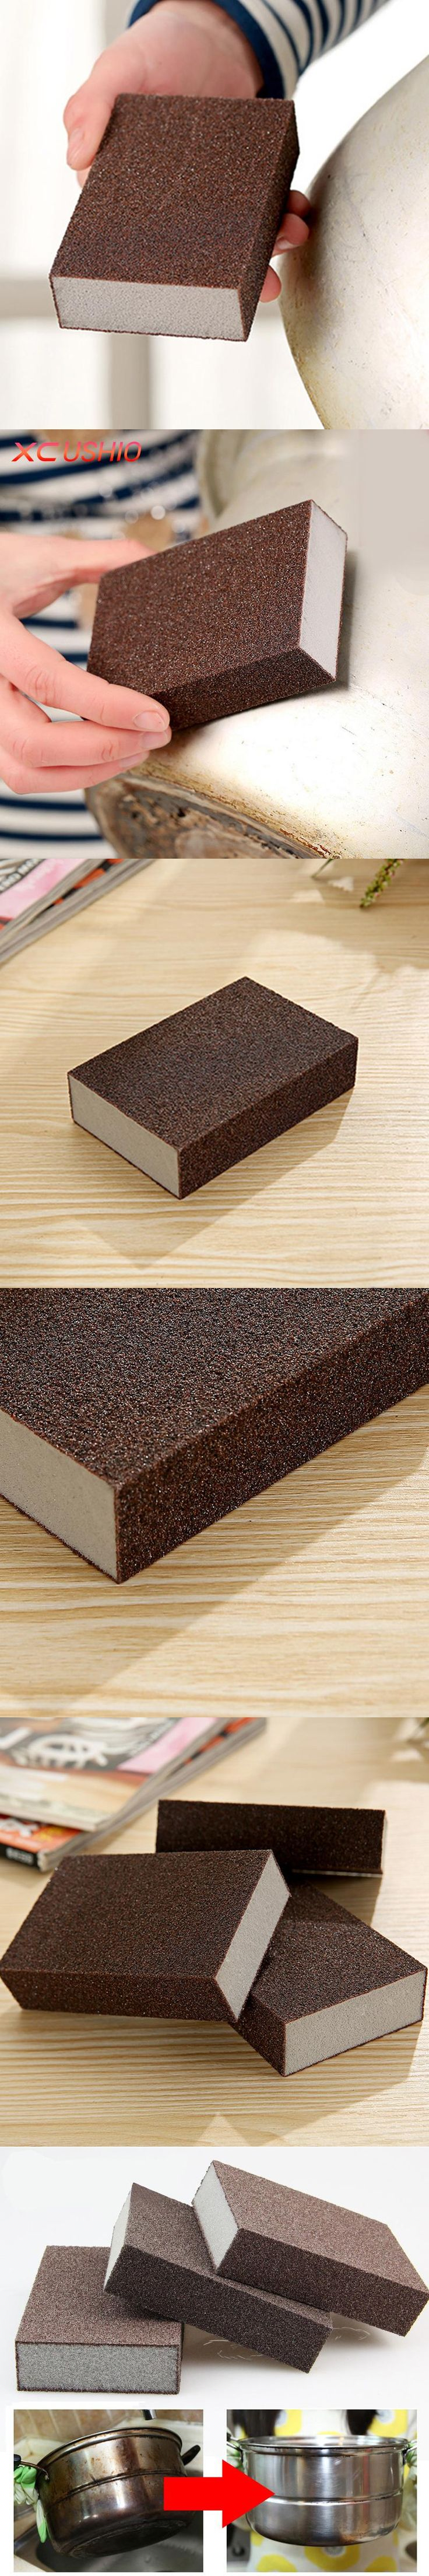 The 25 best removing rust ideas on pinterest remove rust from 1pc high density nano emery magic sponge super strong kitchen removing rust sponge eraser descaling cleaning dailygadgetfo Image collections